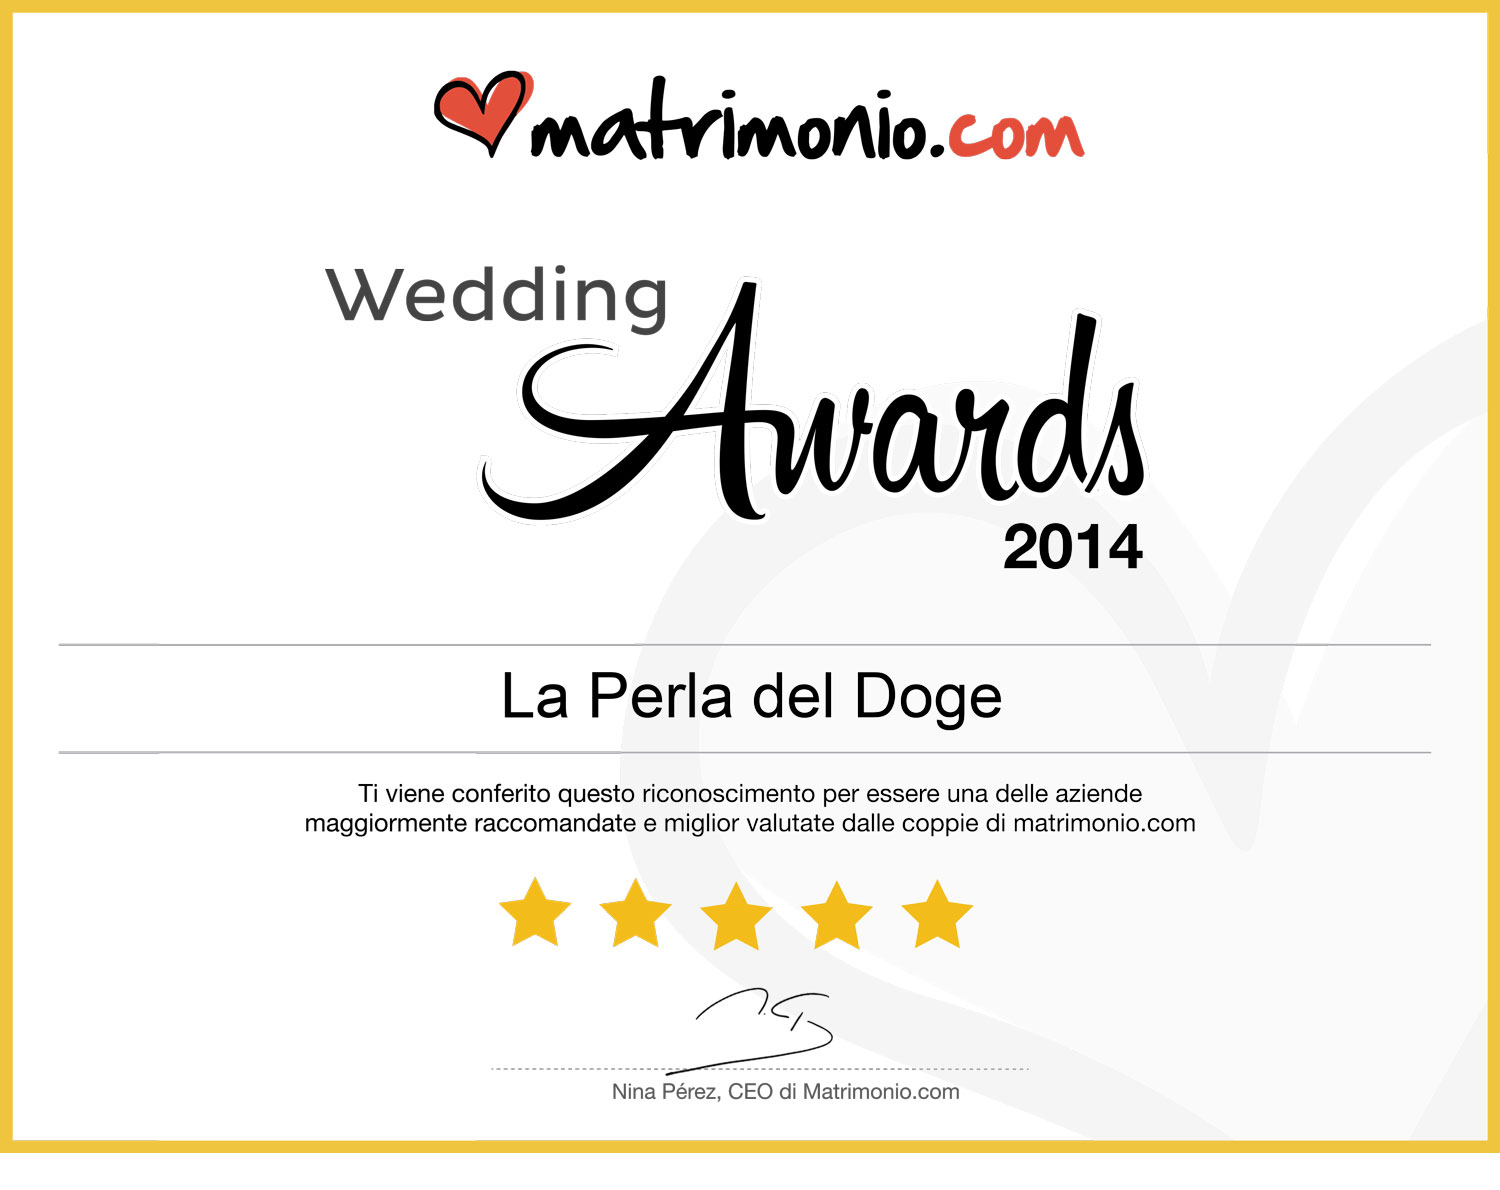 La Perla del Doge vince i Wedding Awards 2014 di Matrimonio.com